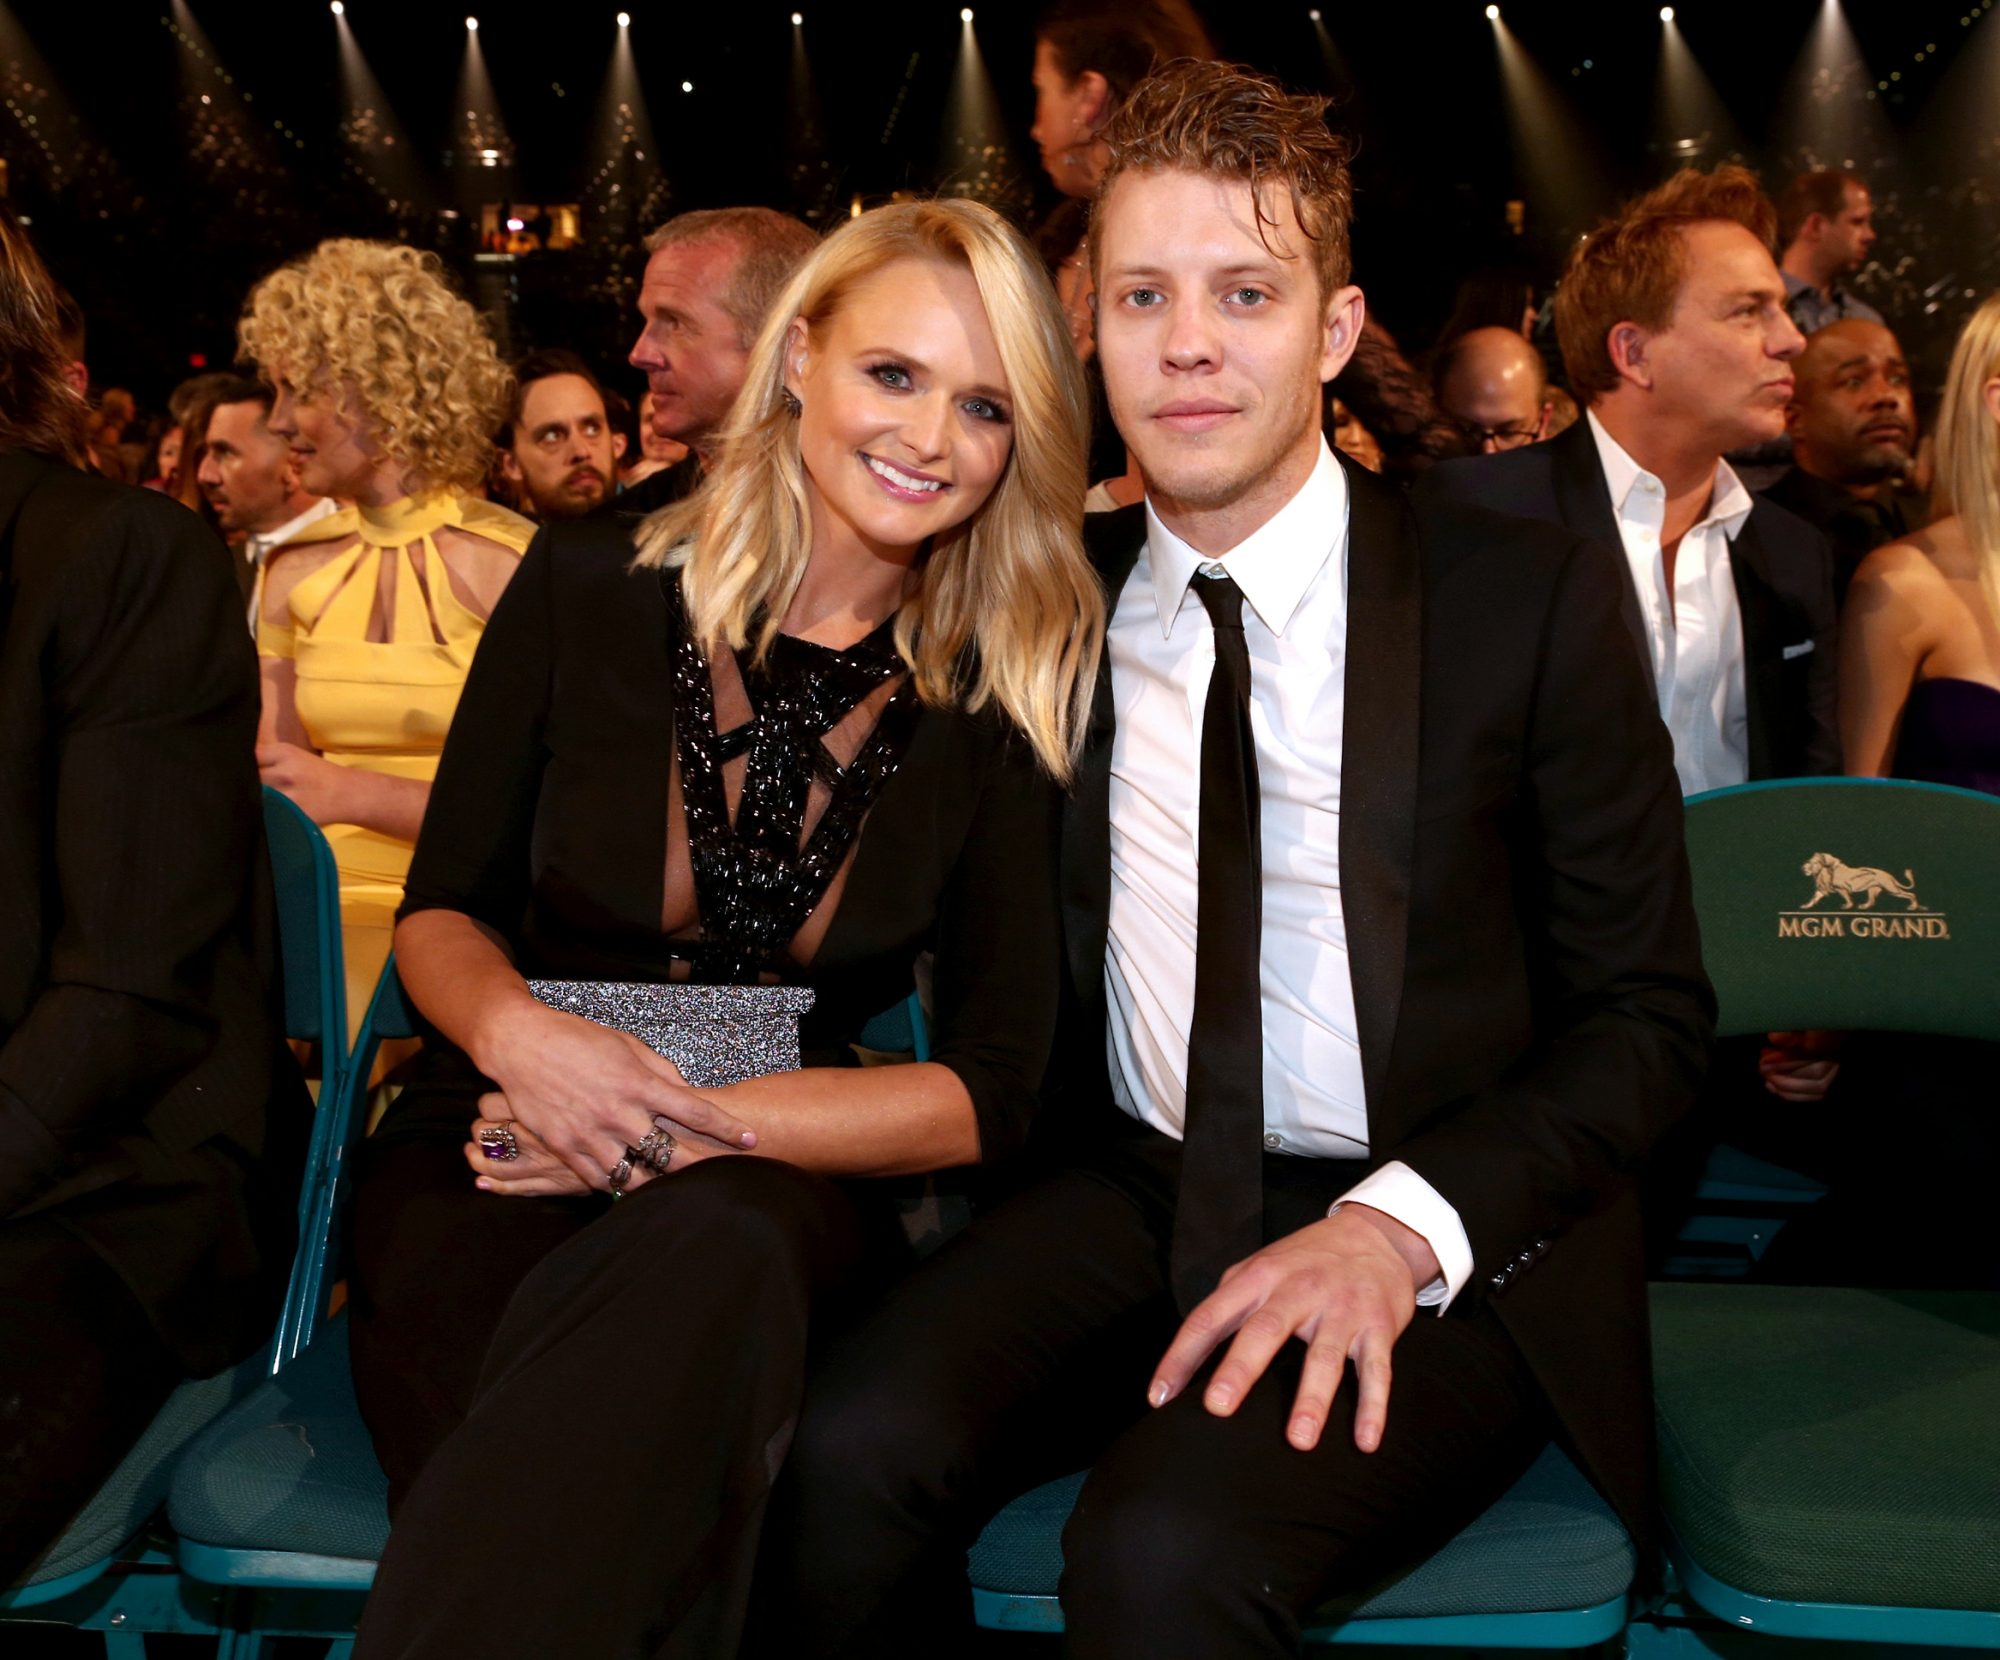 Miranda Lamber Anderson East Red Carpet Debut - Embed